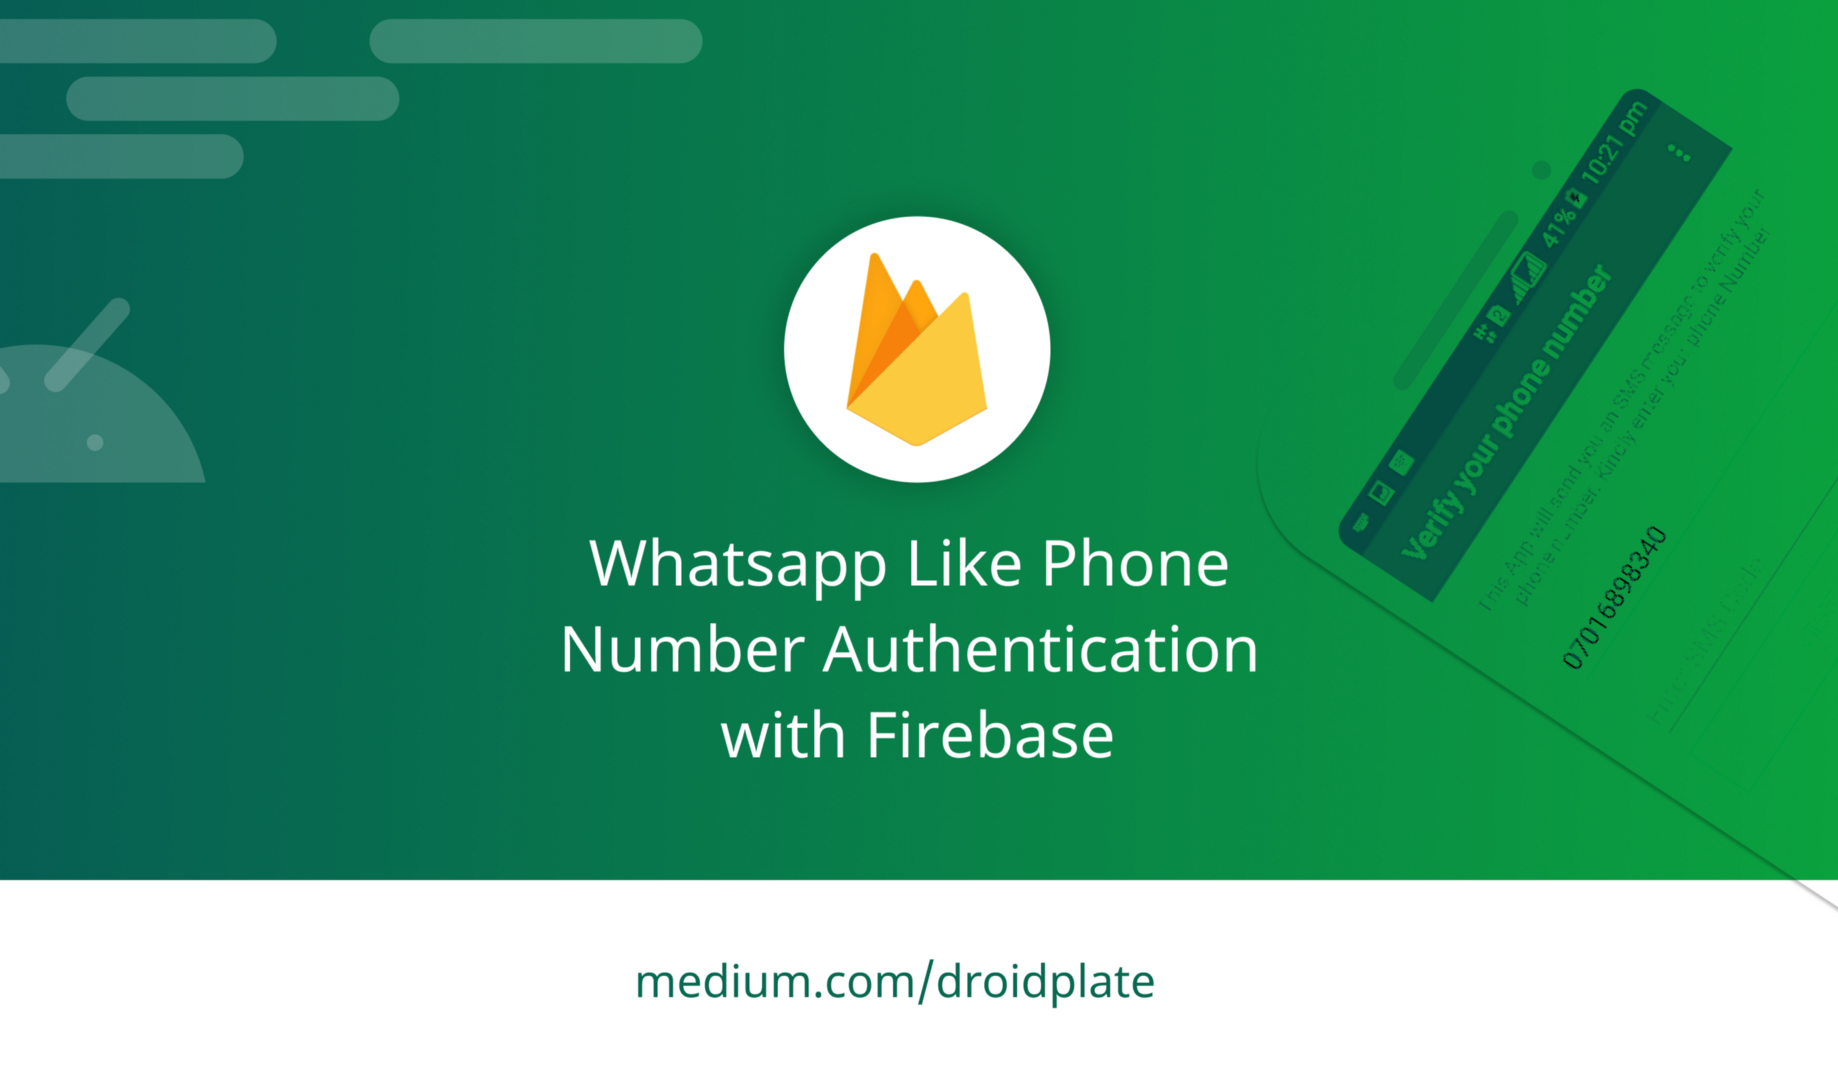 Whatsapp Like Phone Number Authentication with Firebase